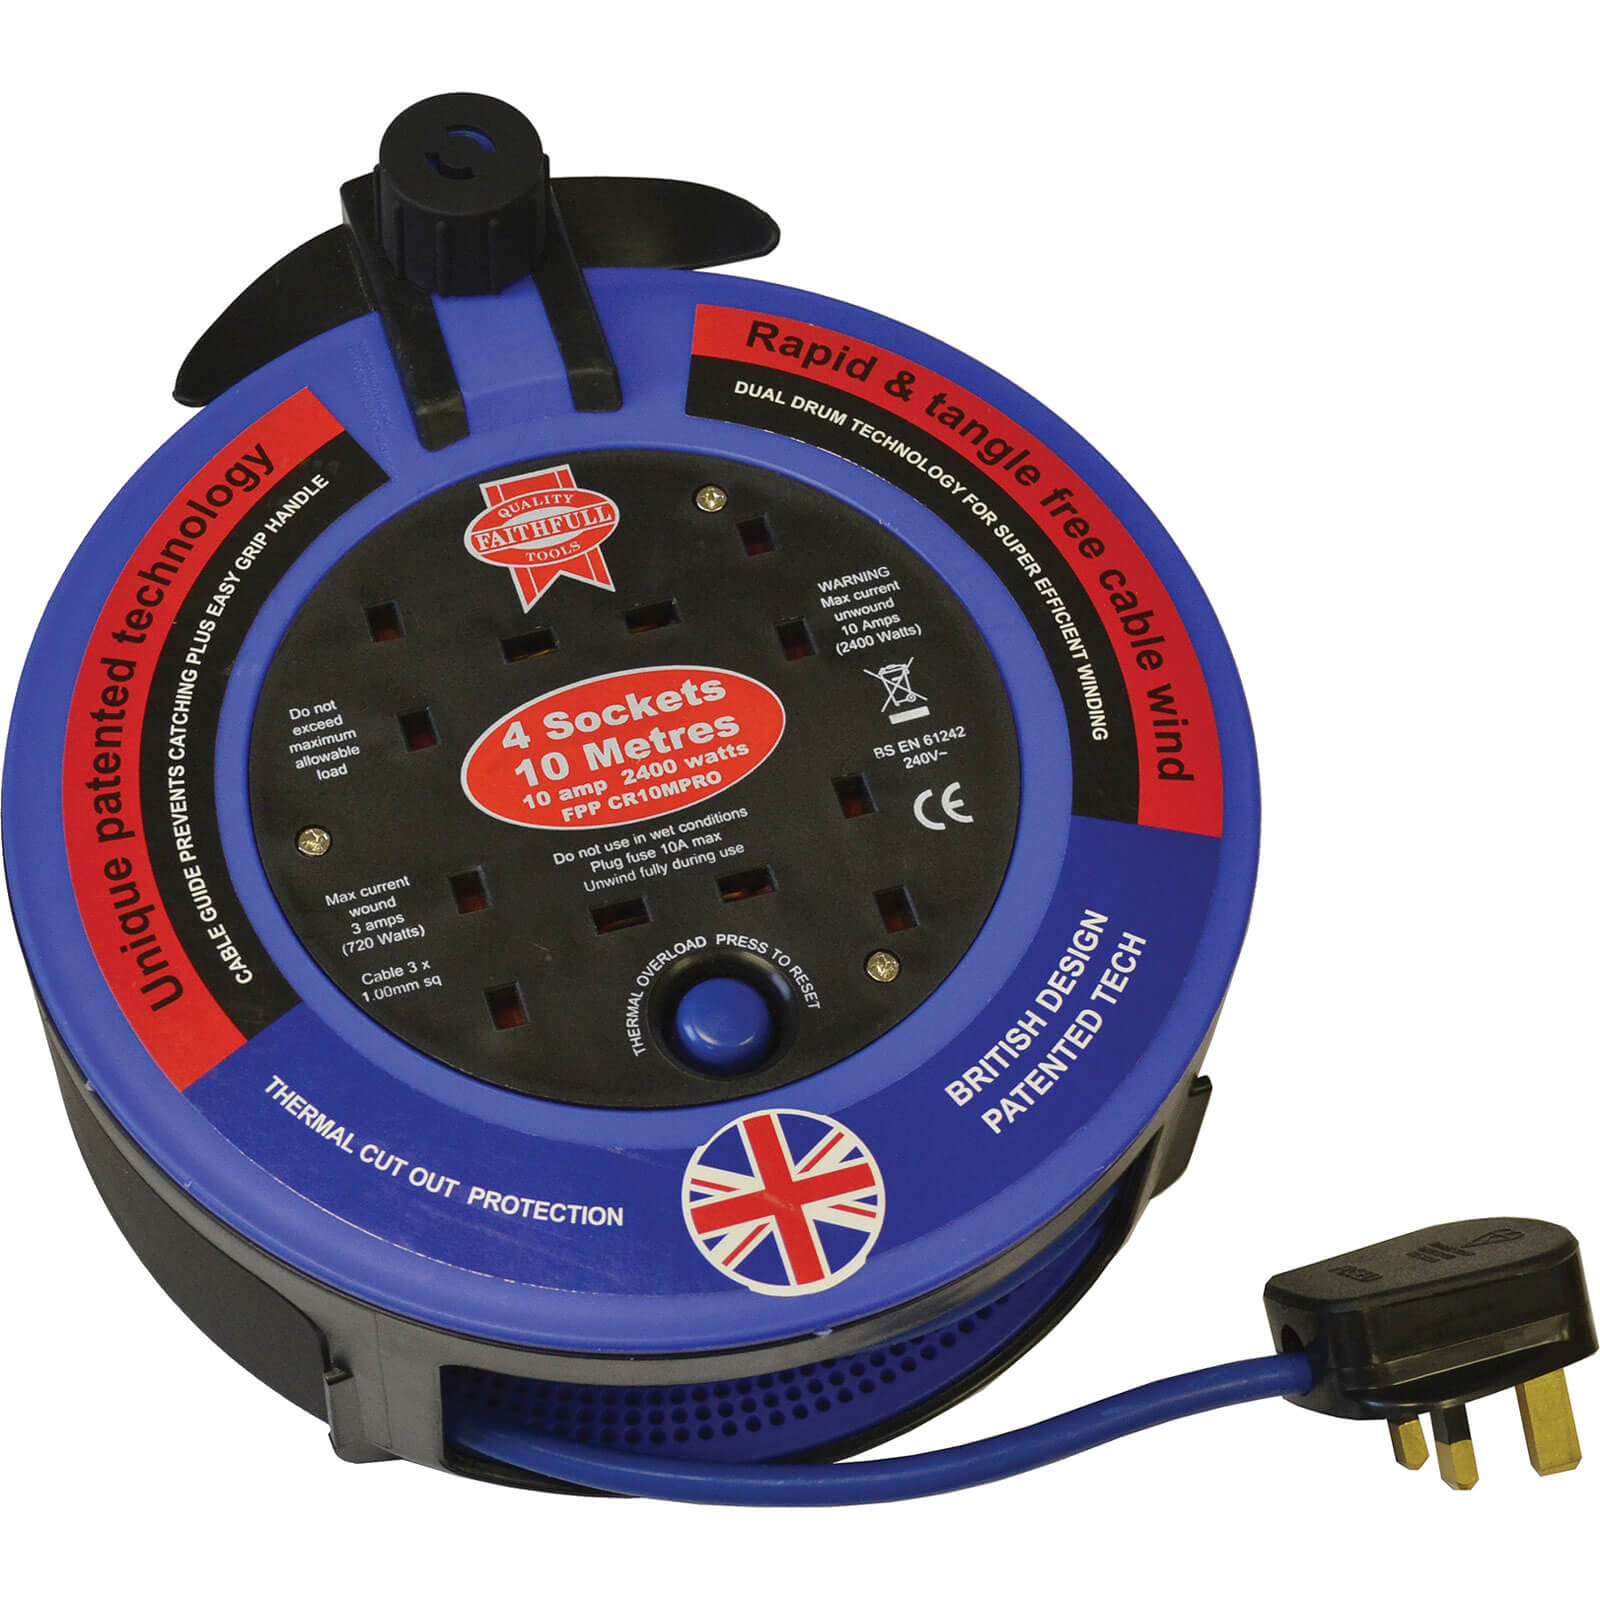 Faithfull Power Plus 4 Socket Cable Reel 10m 10amp 240v